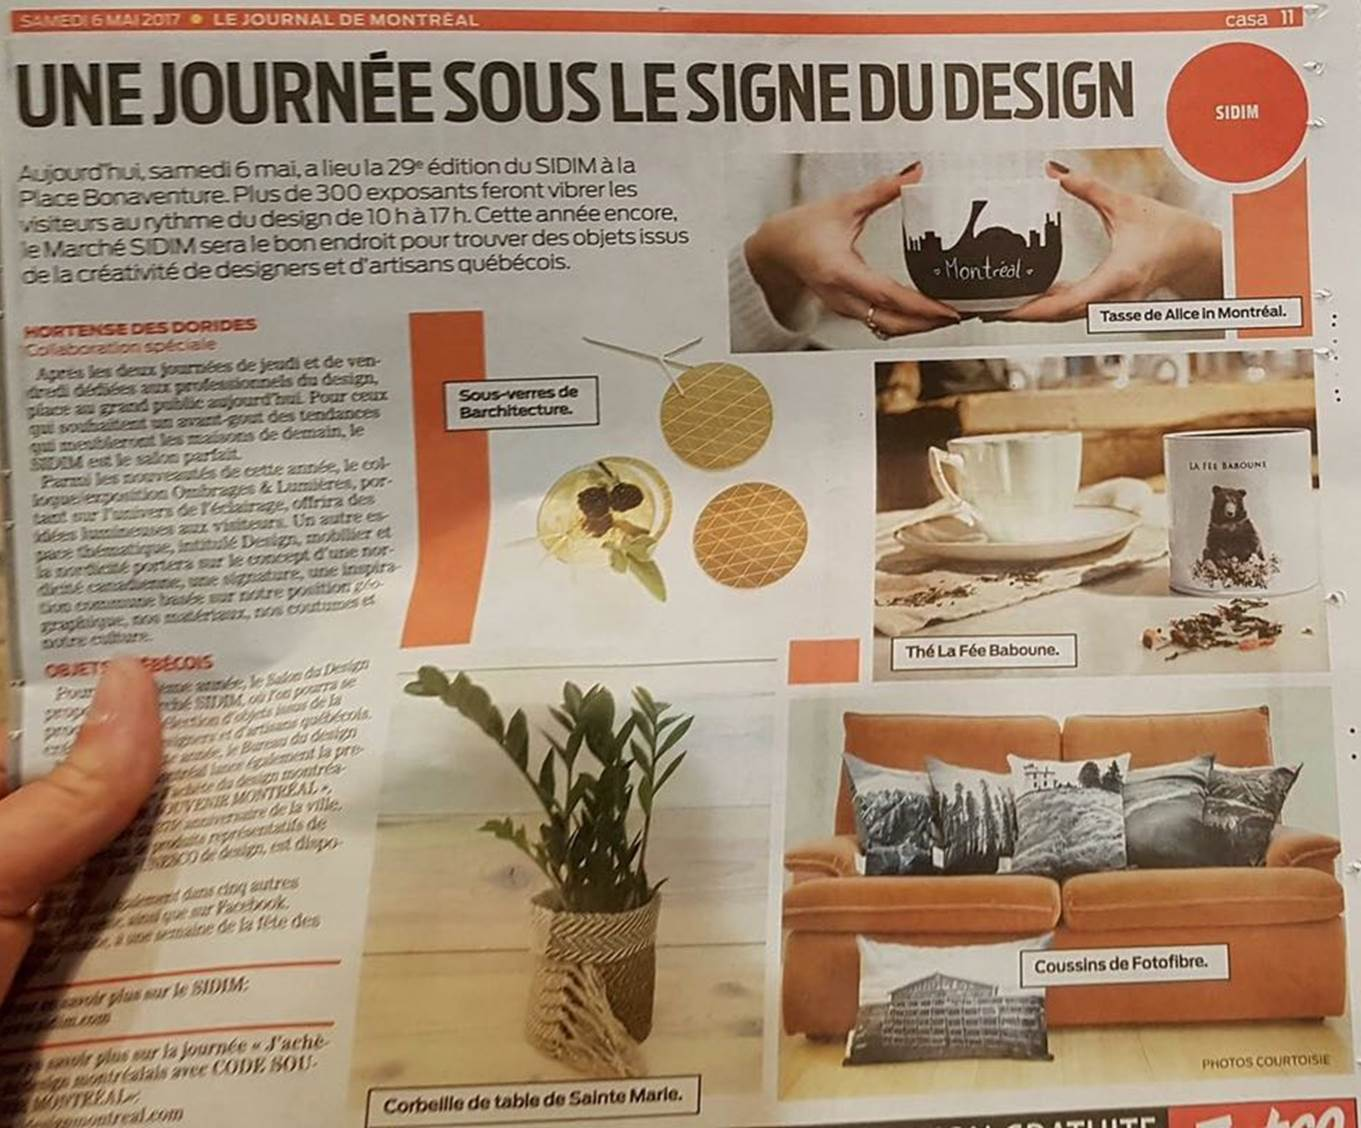 Le Journal de Montreal May 2017